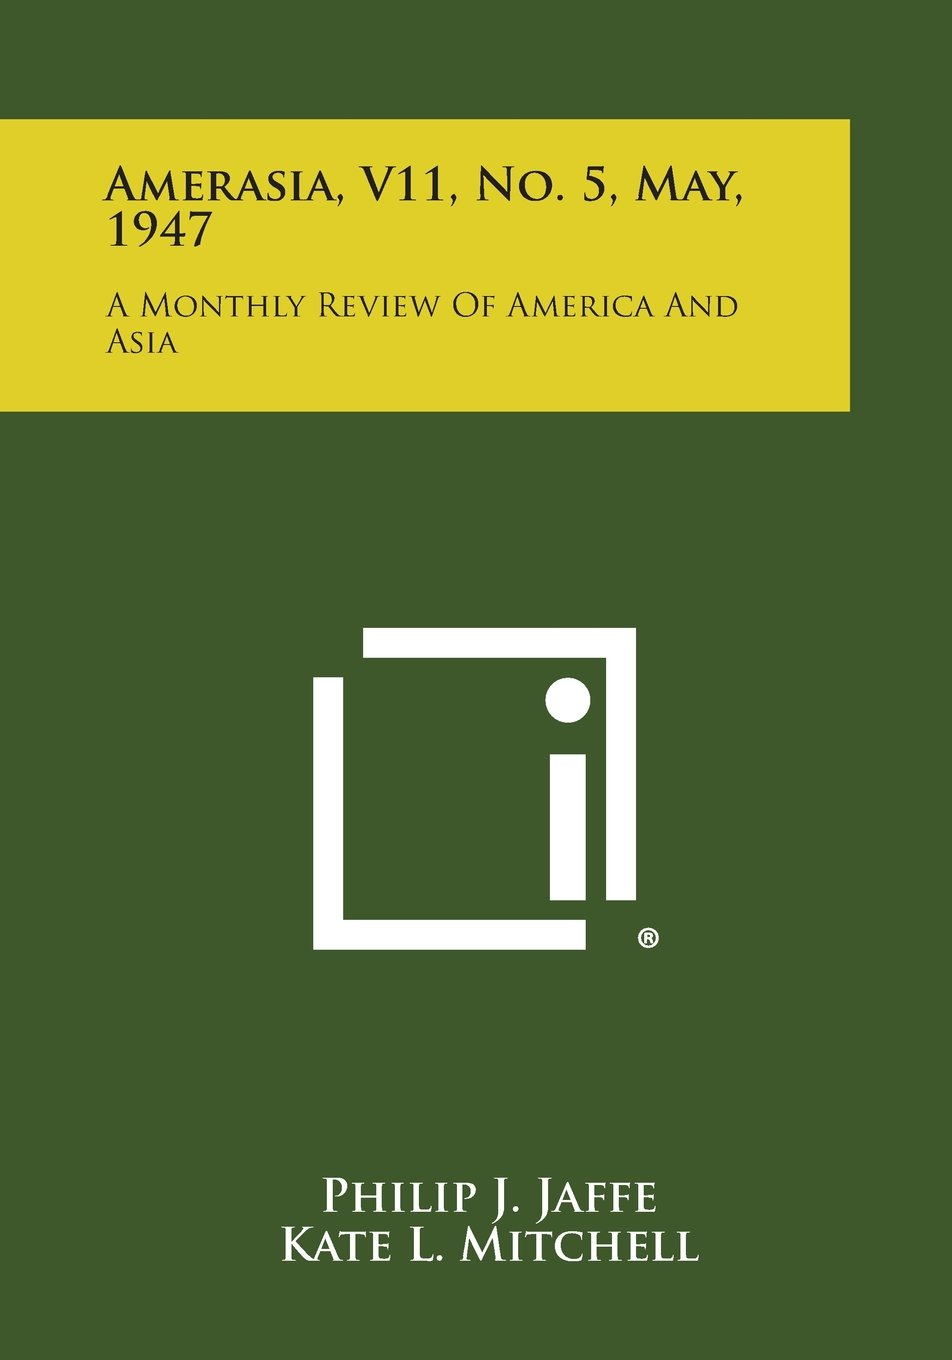 Download Amerasia, V11, No. 5, May, 1947: A Monthly Review of America and Asia PDF